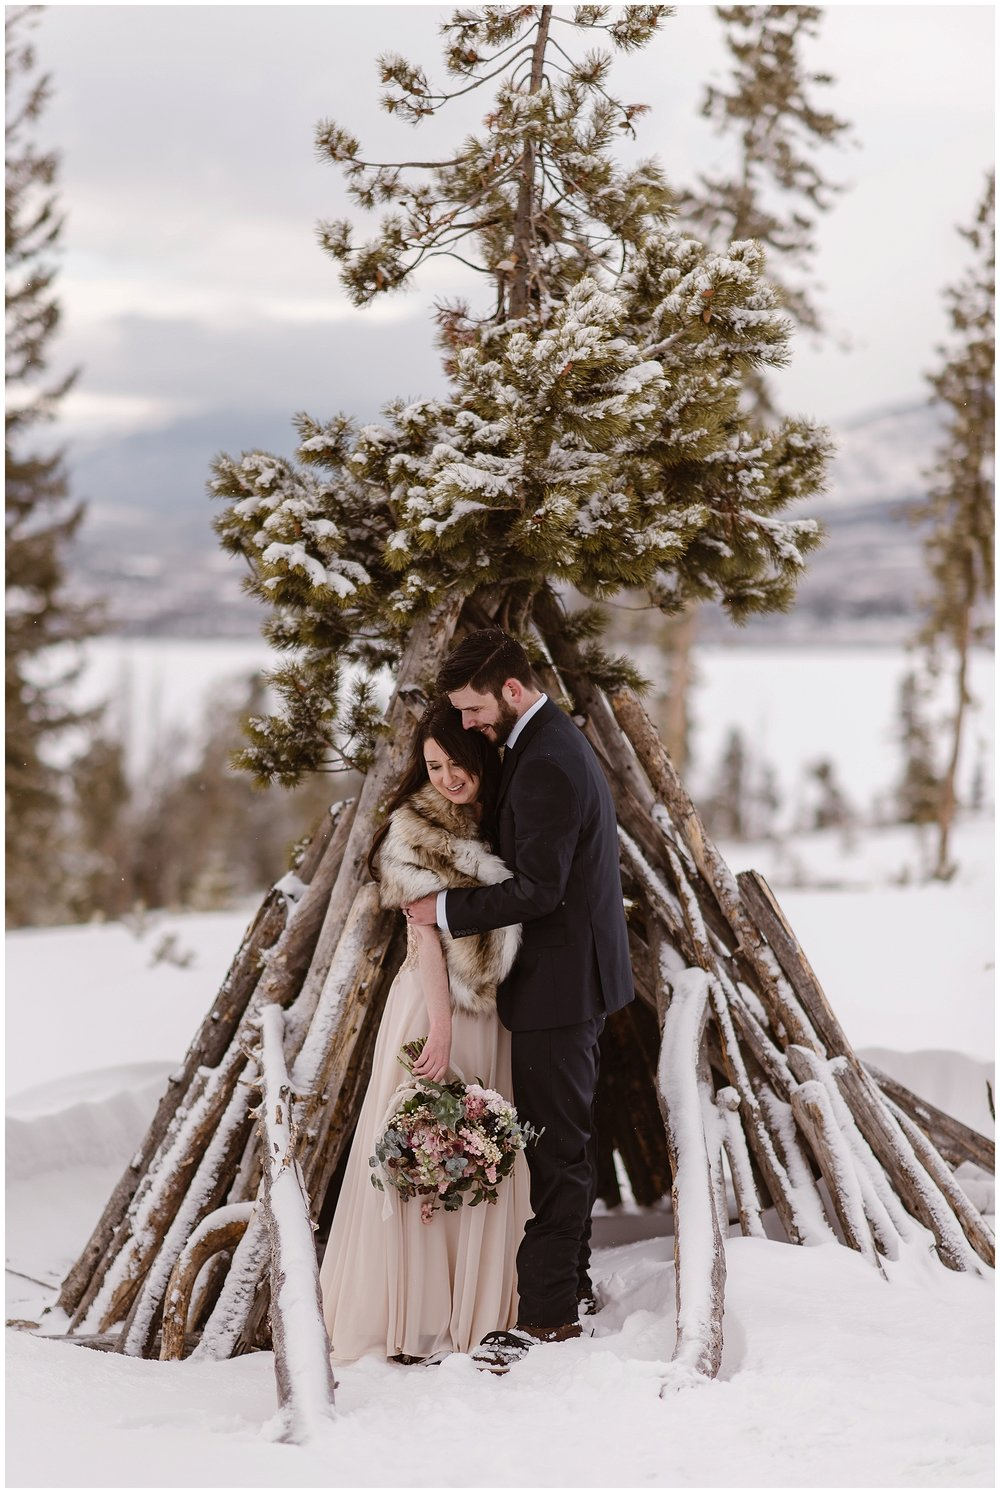 Marlayna and Austin embrace in a wooden snow structure outside Breckenridge, Colorado following their snowy winter elopement ceremony. Photo by Adventure Instead, Maddie Mae Elopement Photographers.